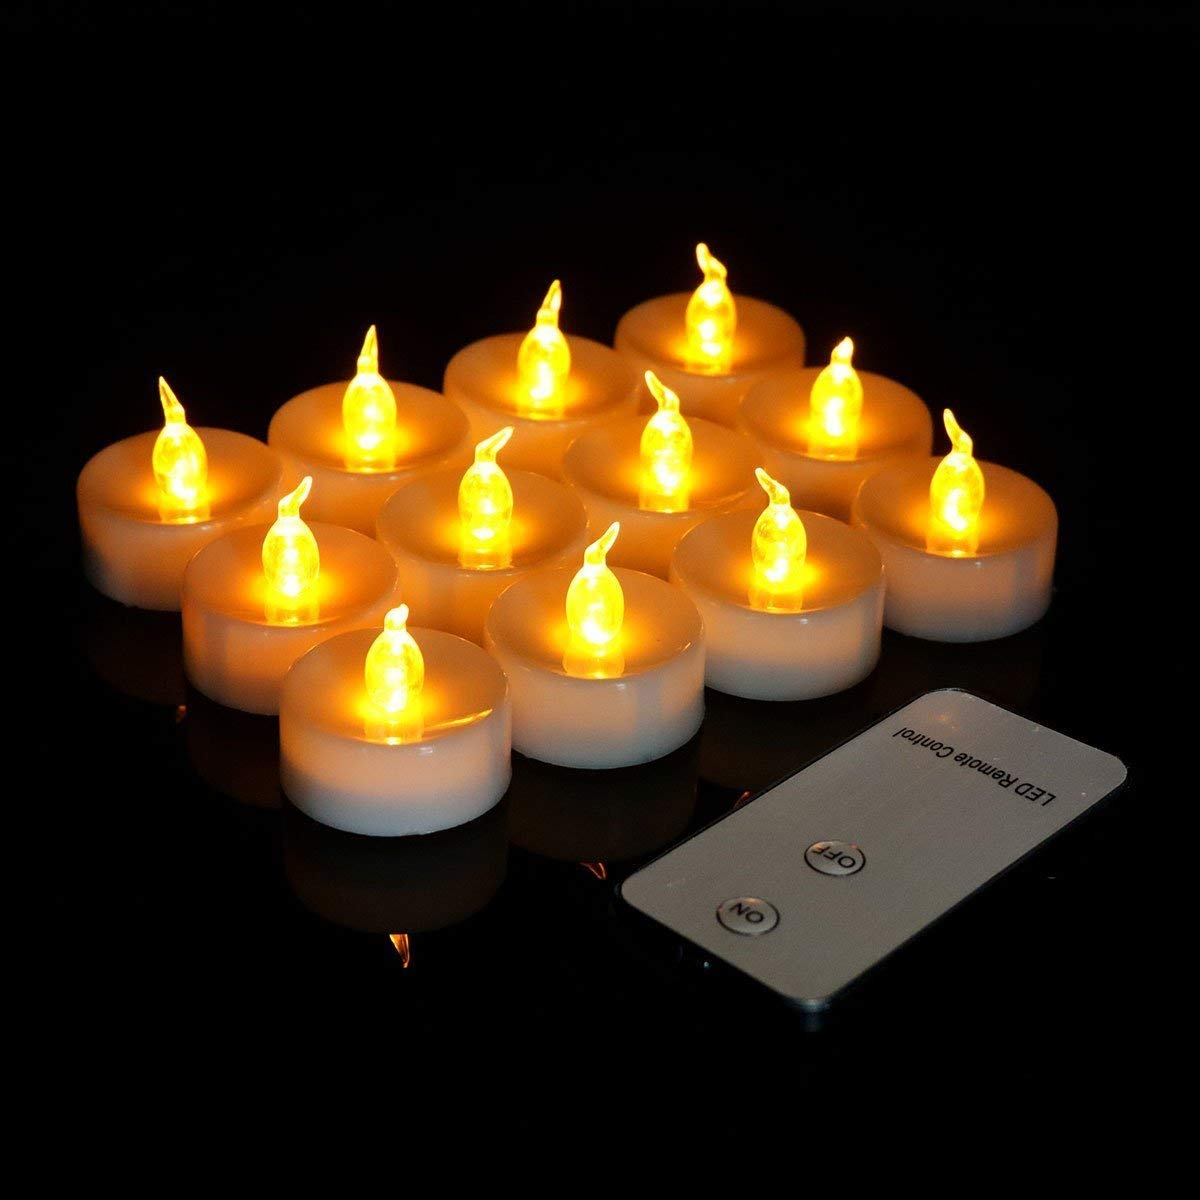 Micandle 12 Pack Remote Candles,Led Flameless Remote Tea Lights for Wedding Party Church Home Decorate,Last up to 48 Hours,Battery Amber Flickering Remote Tealights for Wedding Party by Micandle (Image #2)